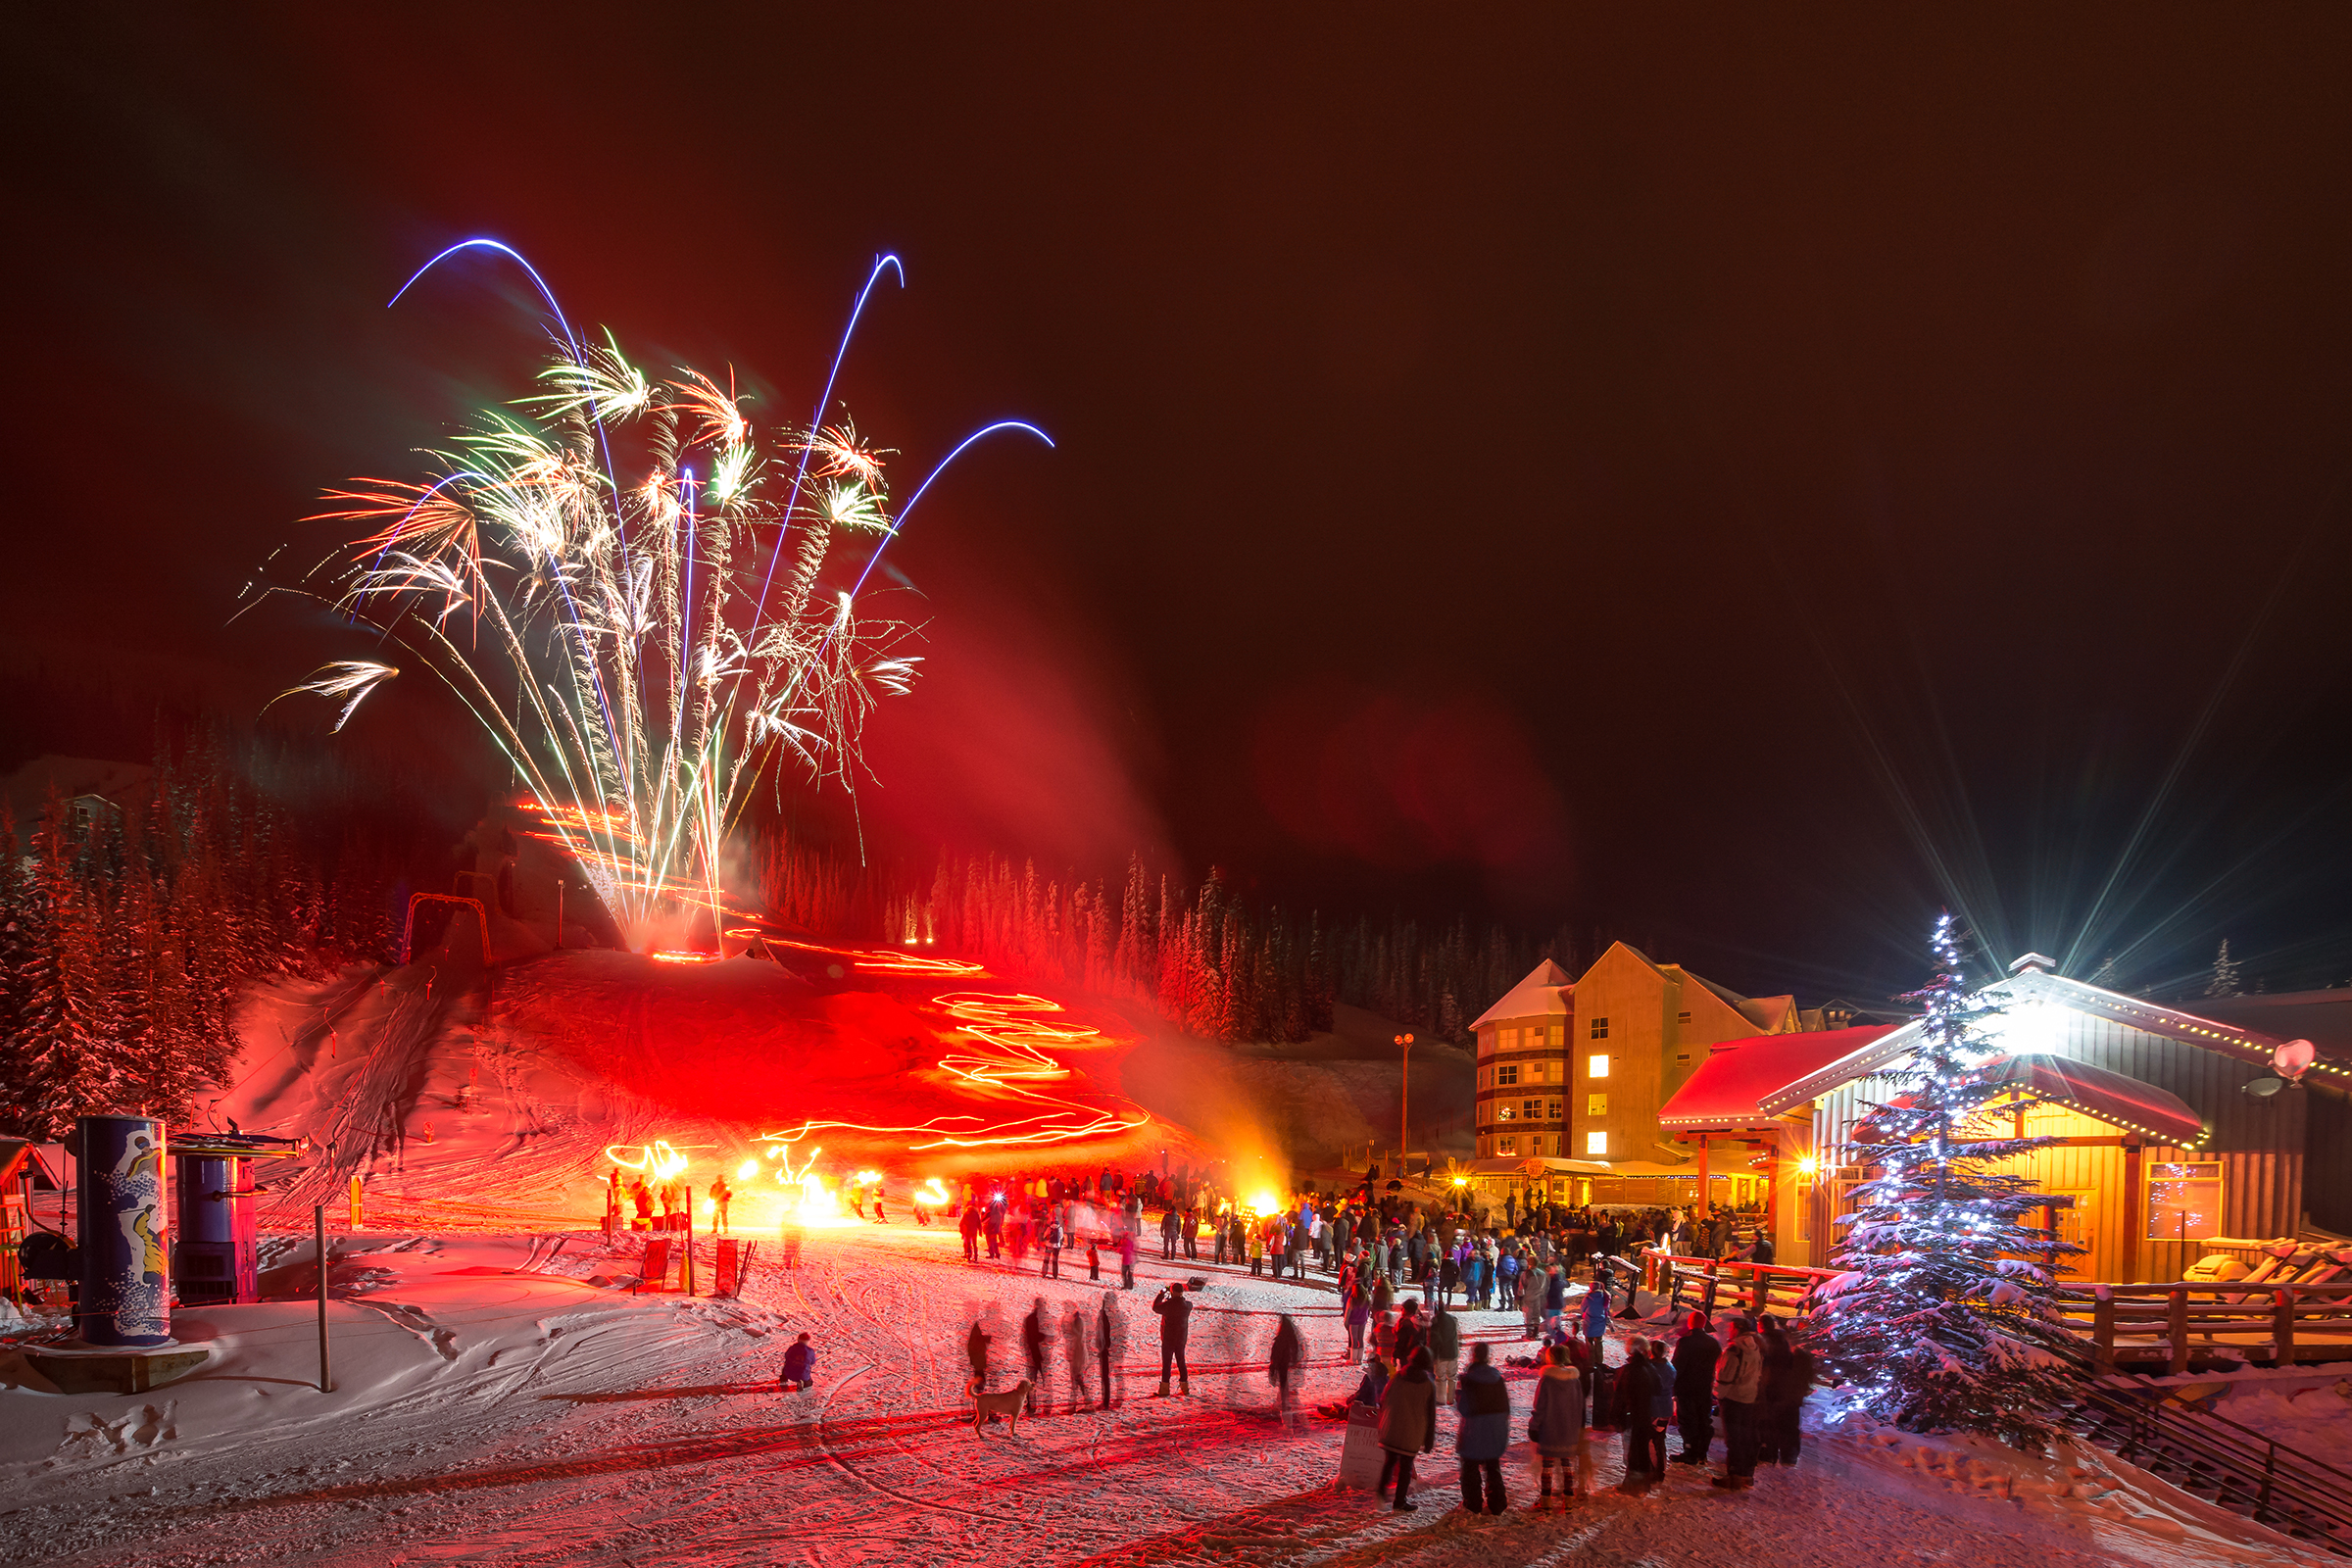 Torchlight parade, fireworks & bonfire during the Christmas holidays in the Okanagan Valley